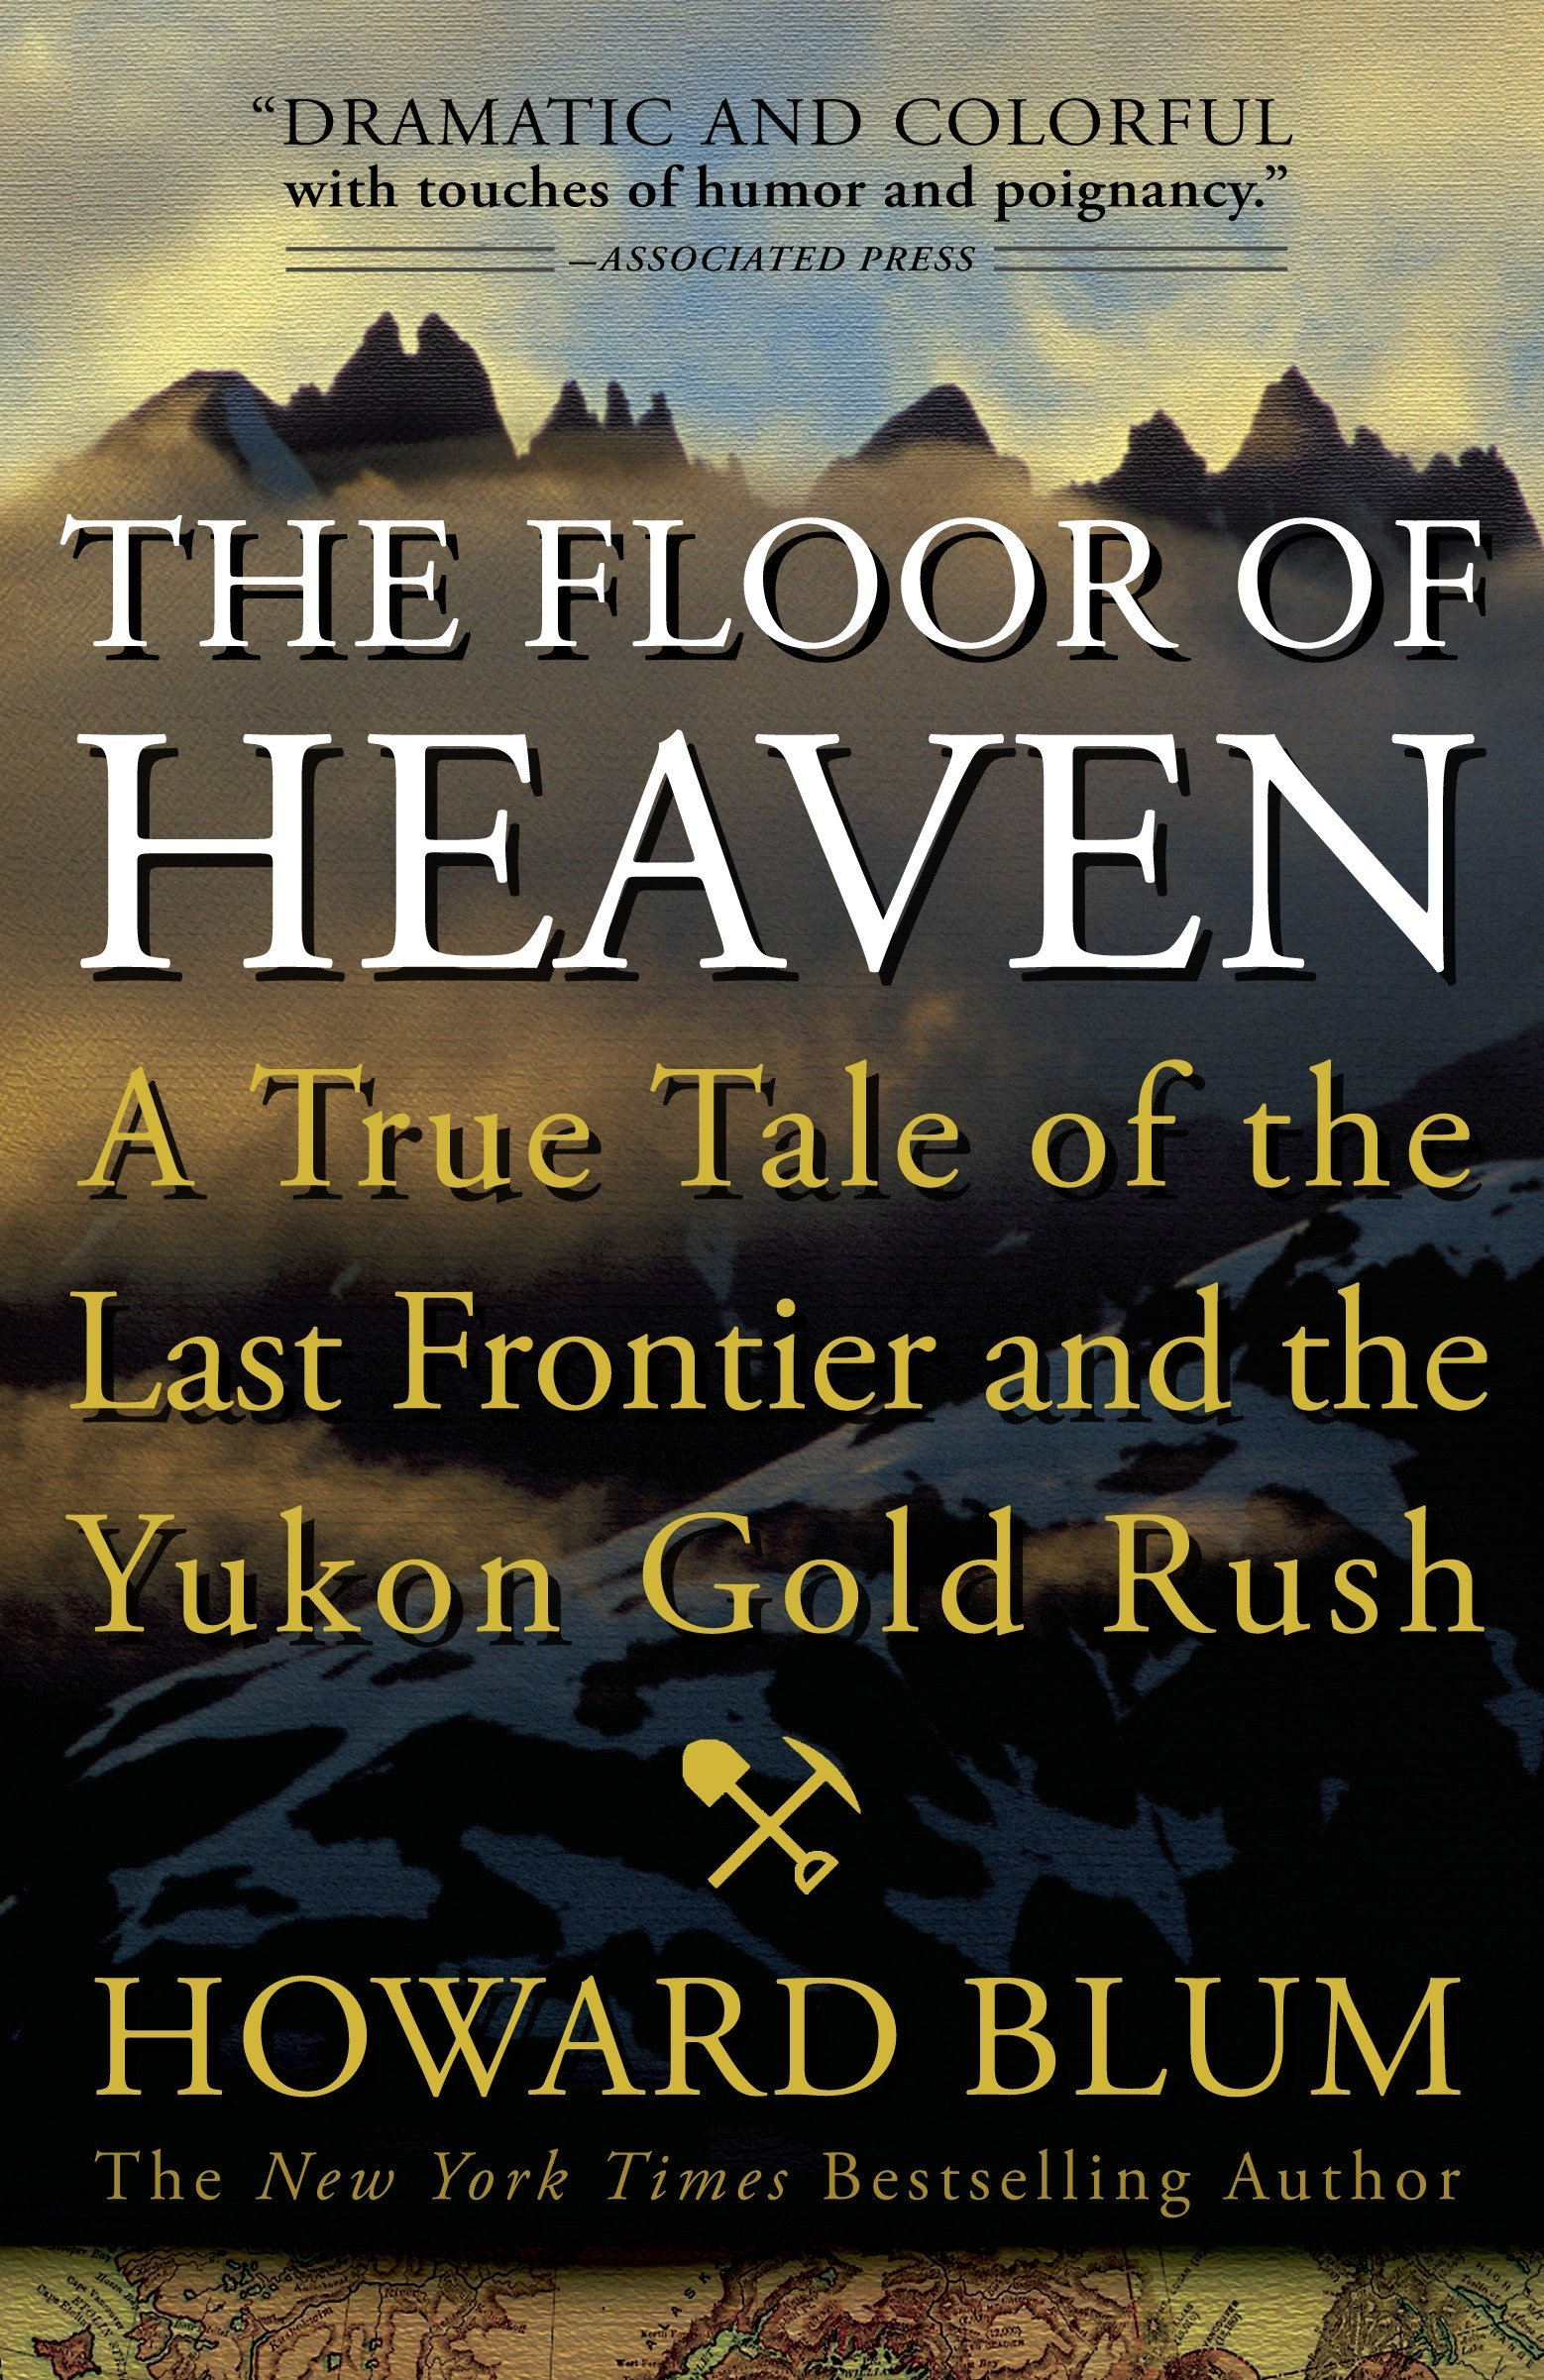 The Floor of Heaven: A True Tale of the Last Frontier and the Yukon Gold  Rush: Howard Blum: 9780307461735: Amazon.com: Books